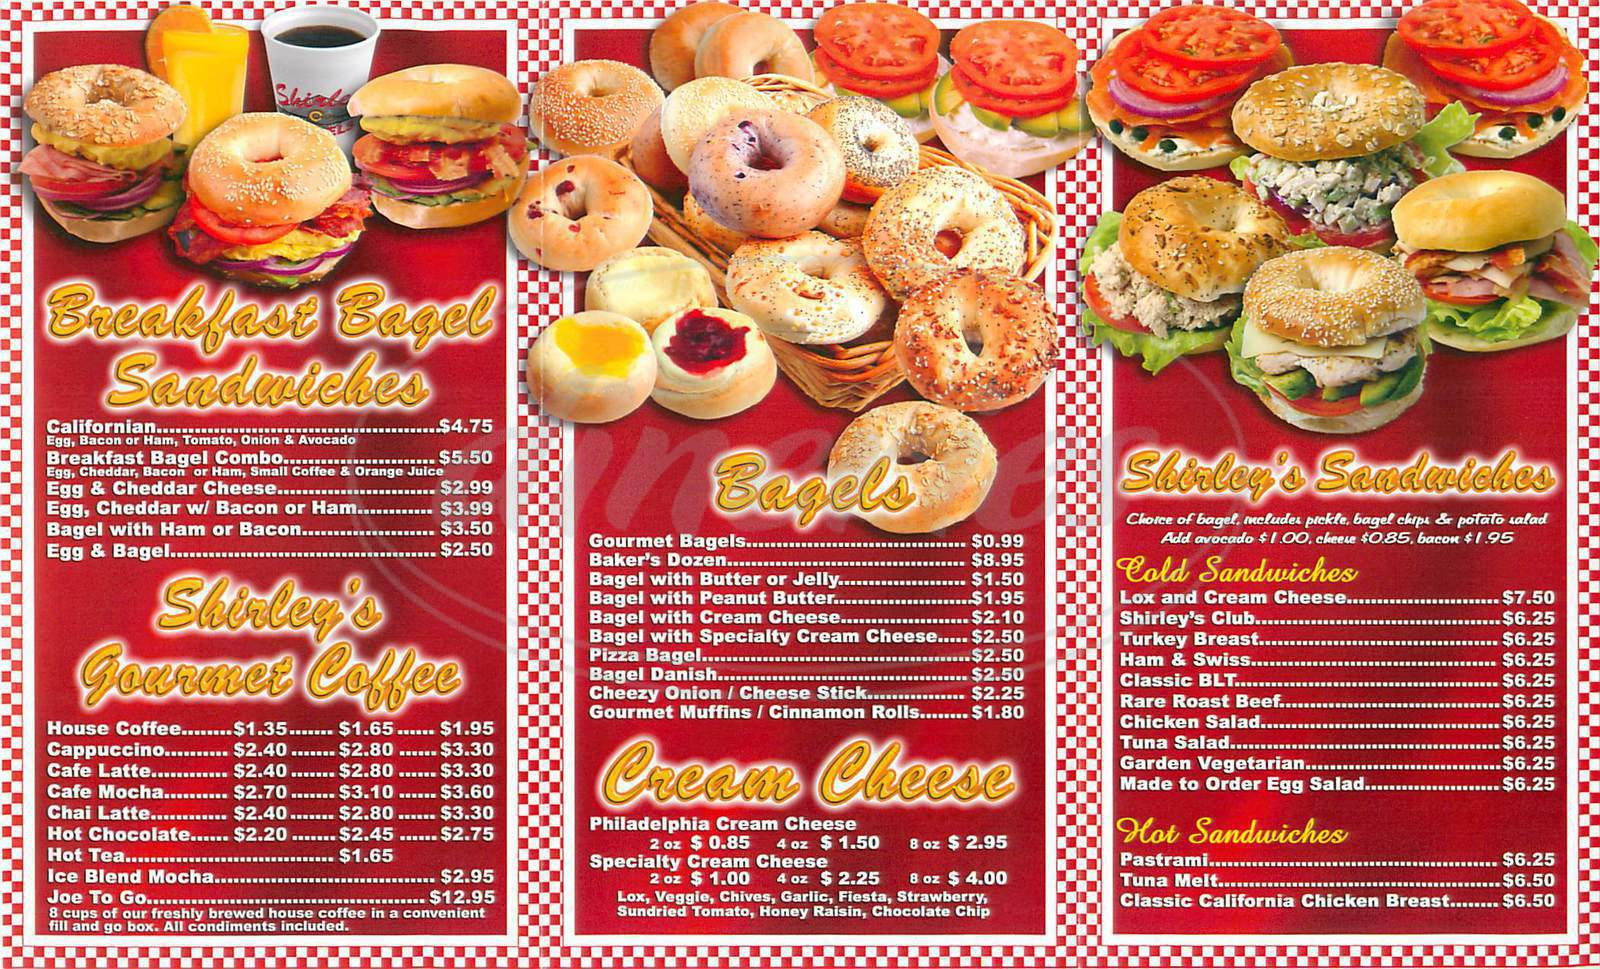 menu for Shirley's Bagels